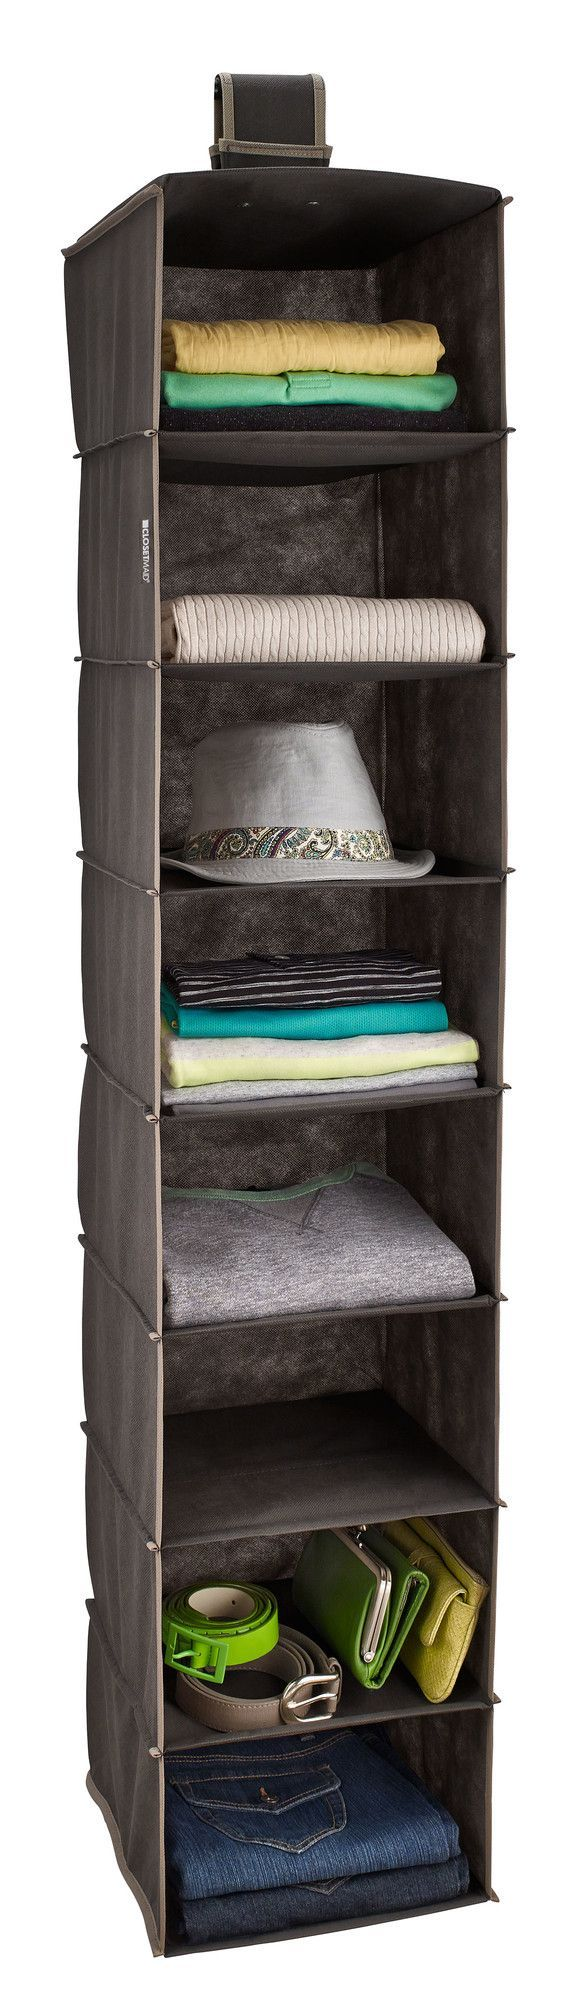 Features:  8 Shelf Organizer Maximizes Vertical Hanging Space.  Versatile  Hook And Loop Fastener Can Hang On A Wire Shelf Or Standard Closet Rod.